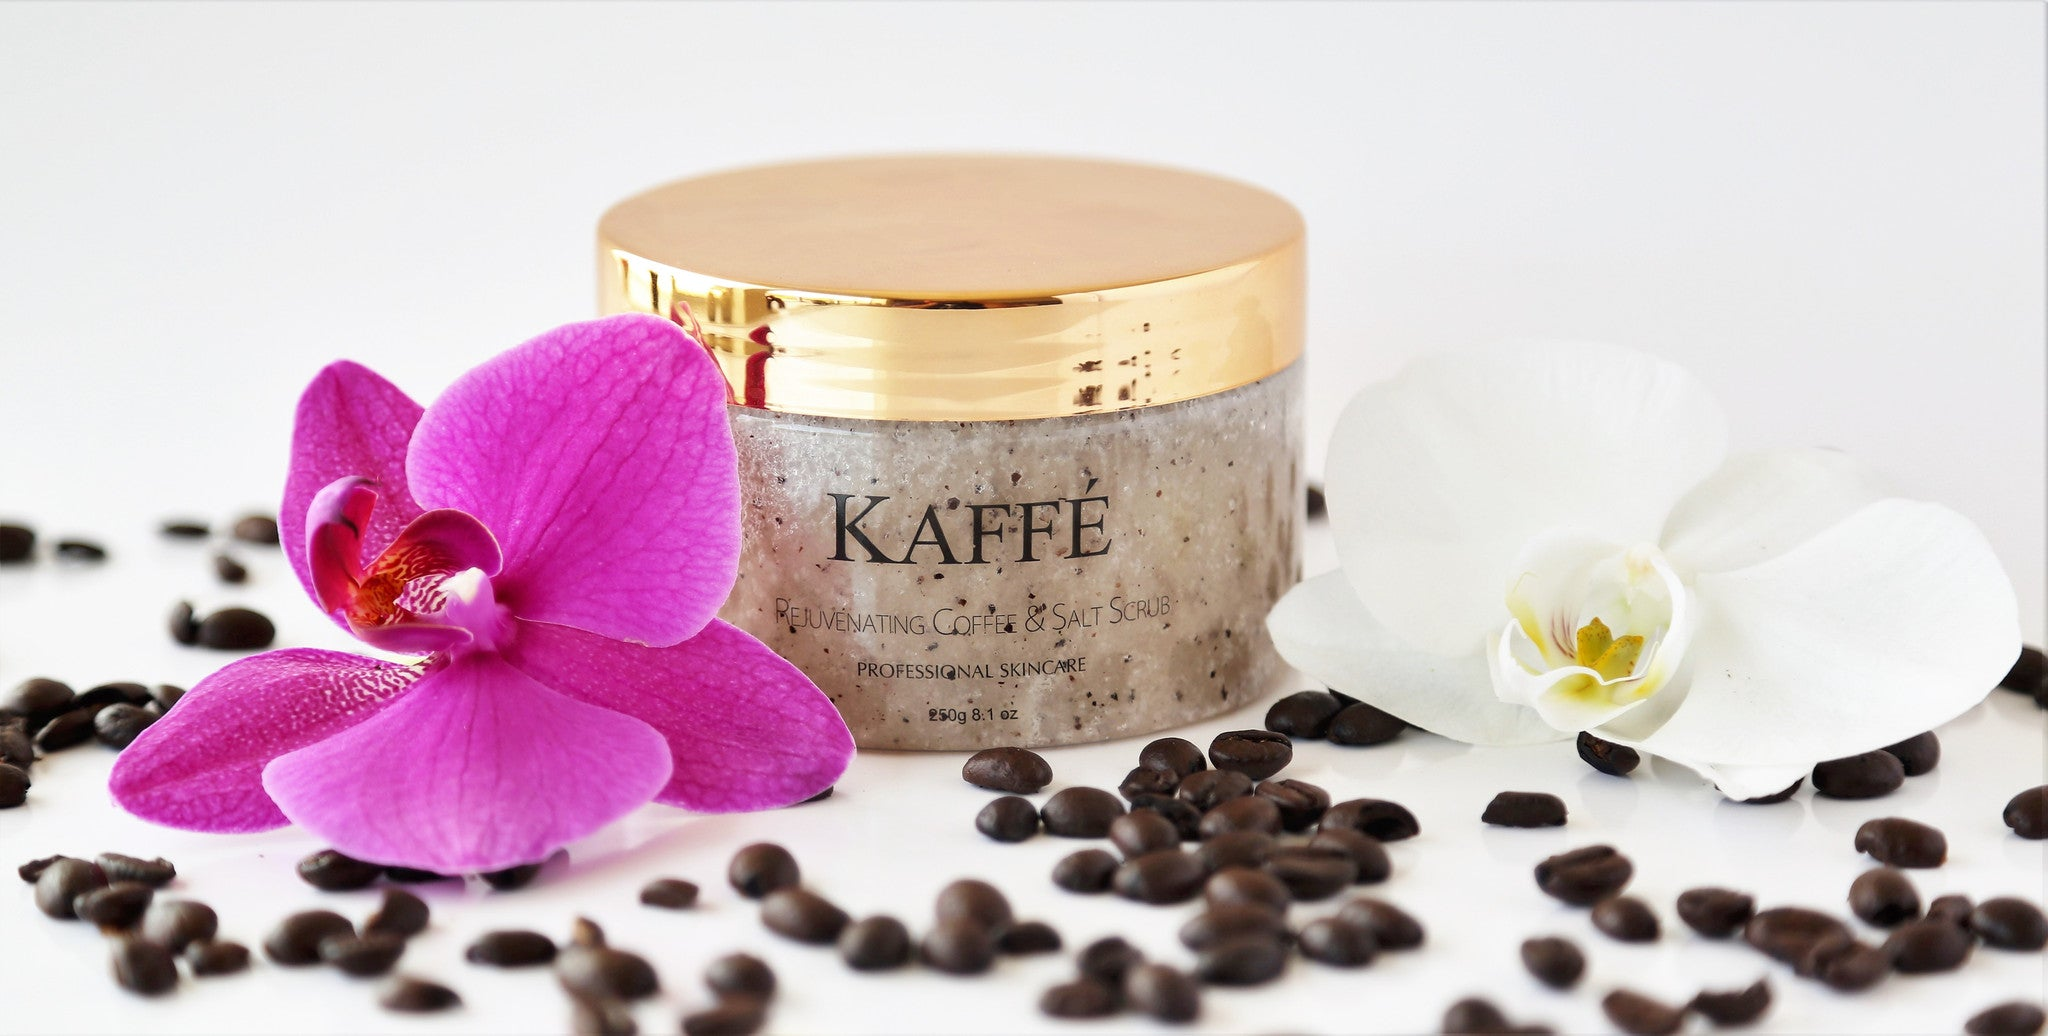 REJUVENATING COFFEE & SALT SCRUB